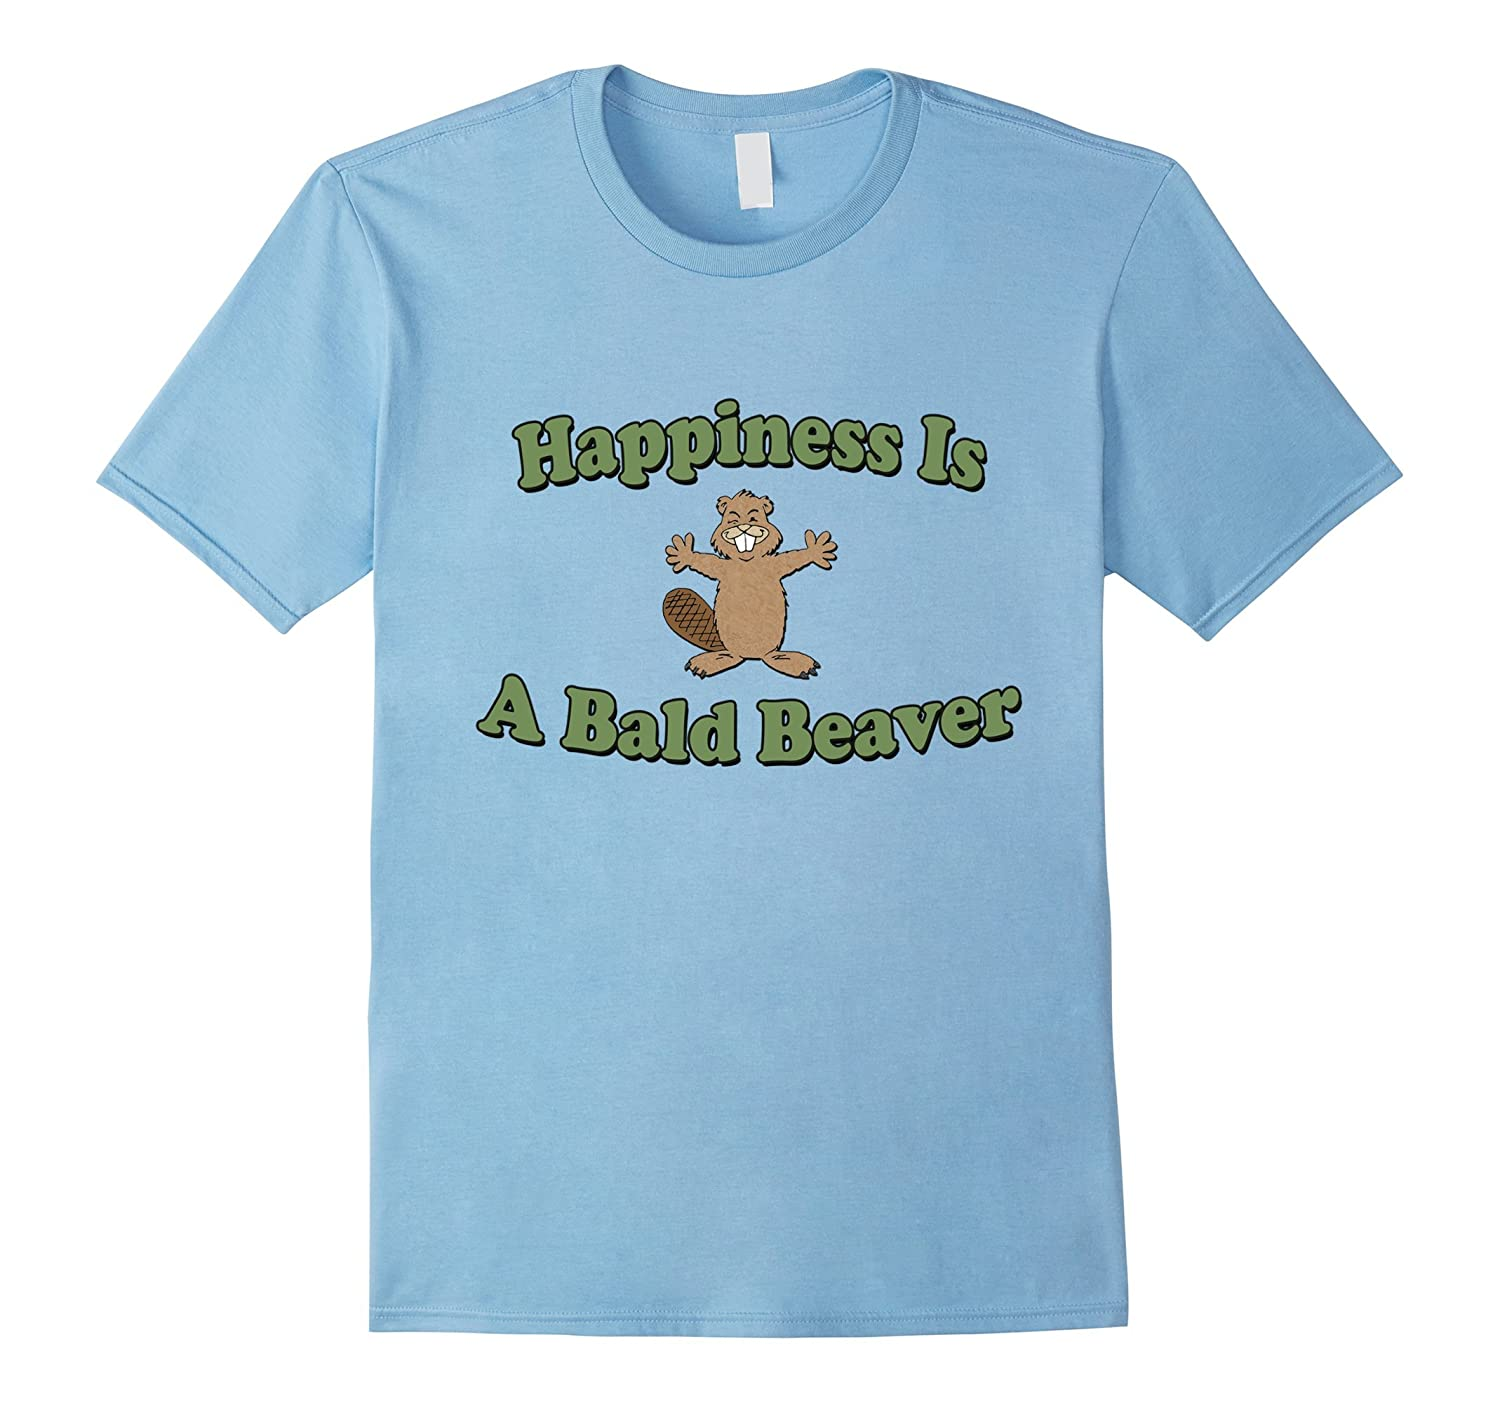 Reply, shaved beaver t shirts your idea